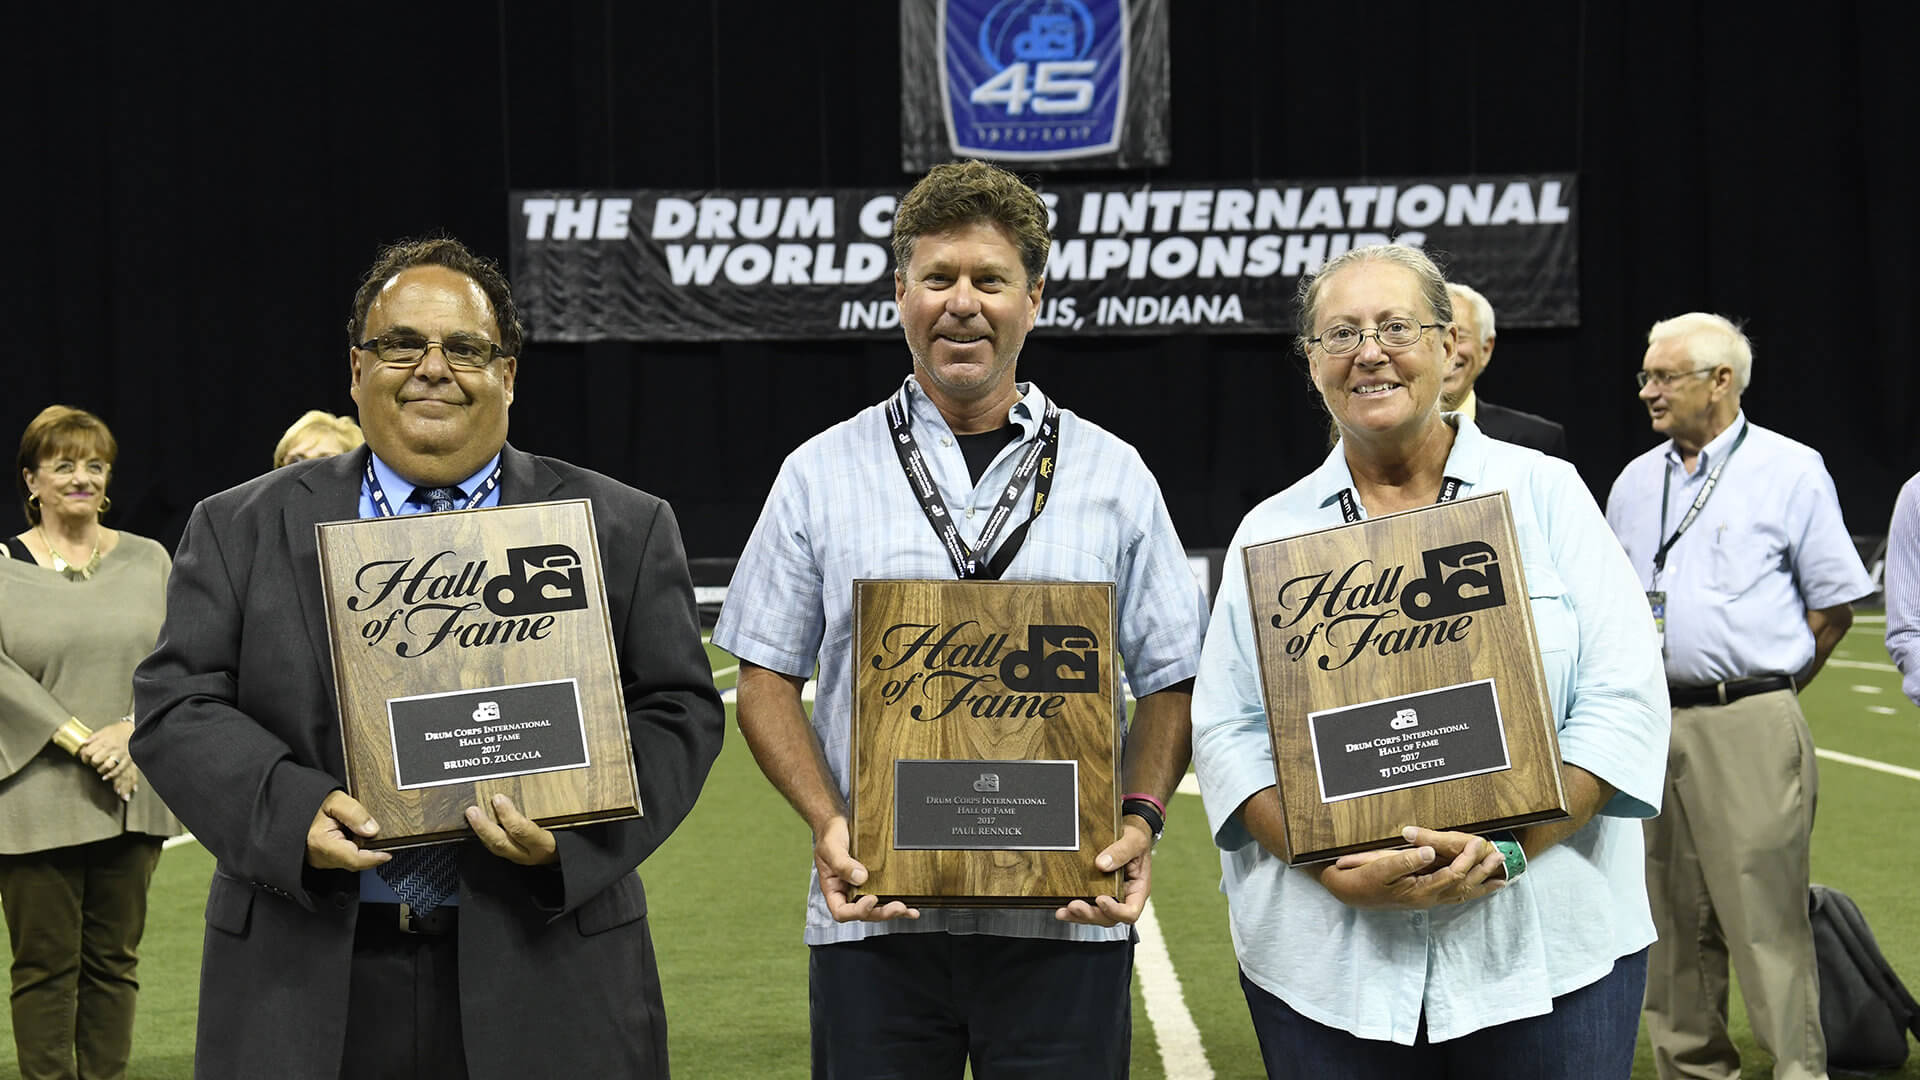 DCI Hall of Fame - Overview